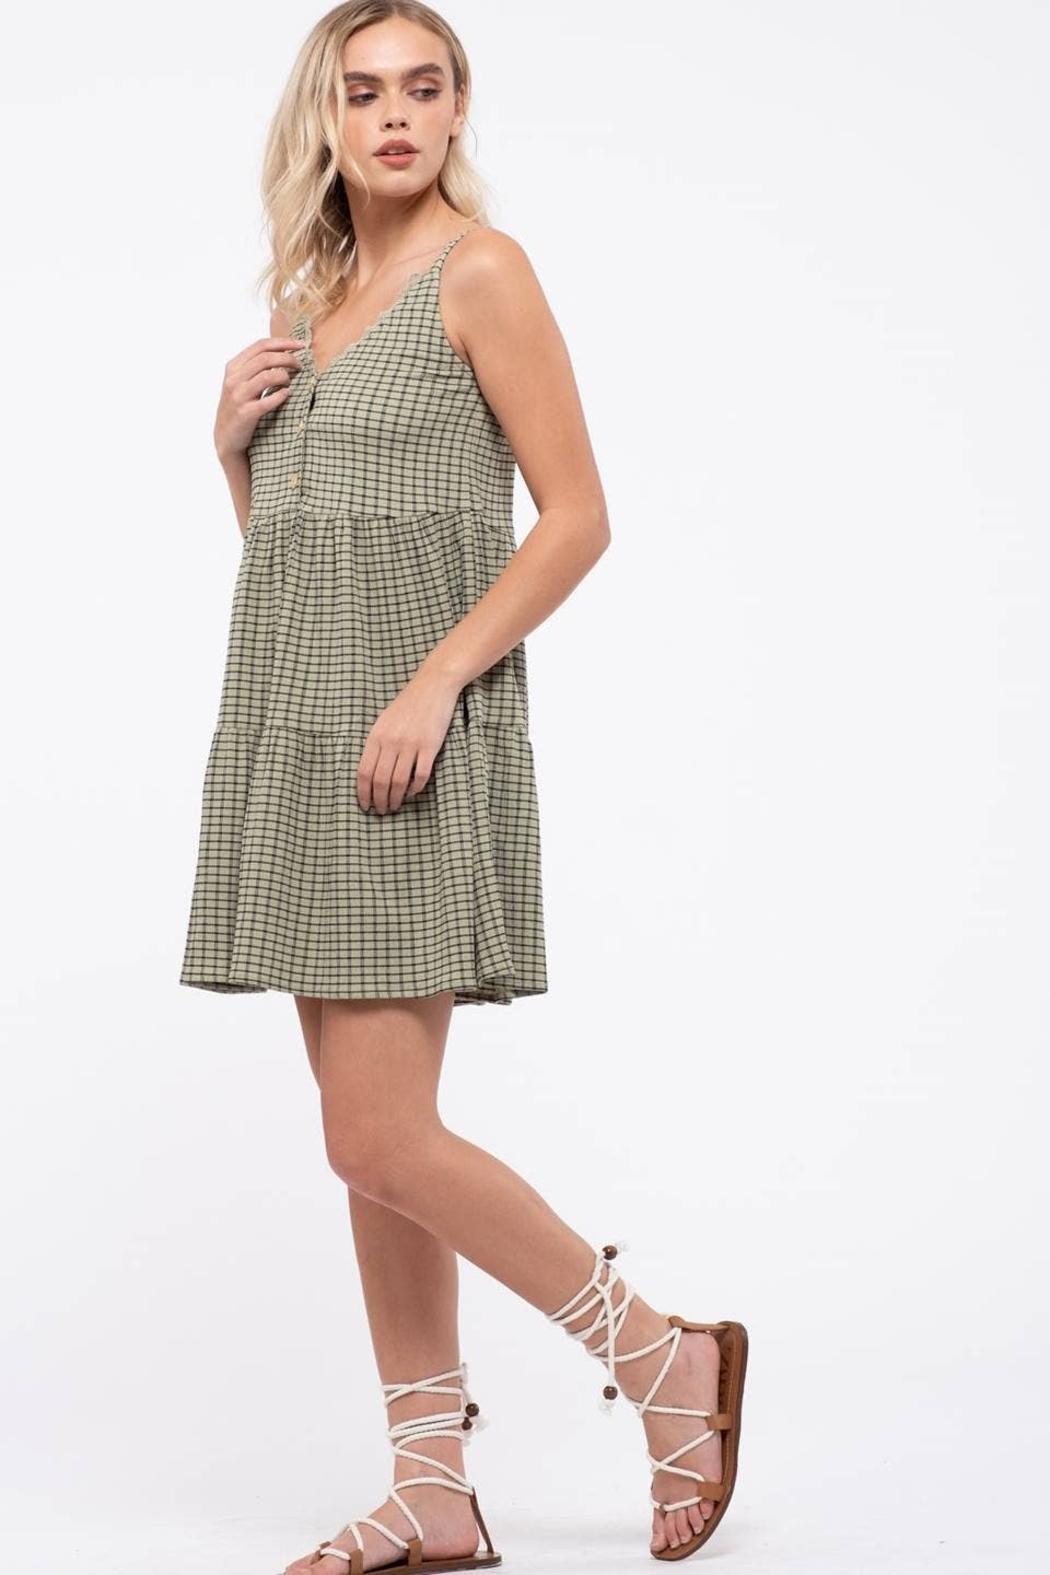 blu pepper  Grid Check Tiered Dress - Side Cropped Image